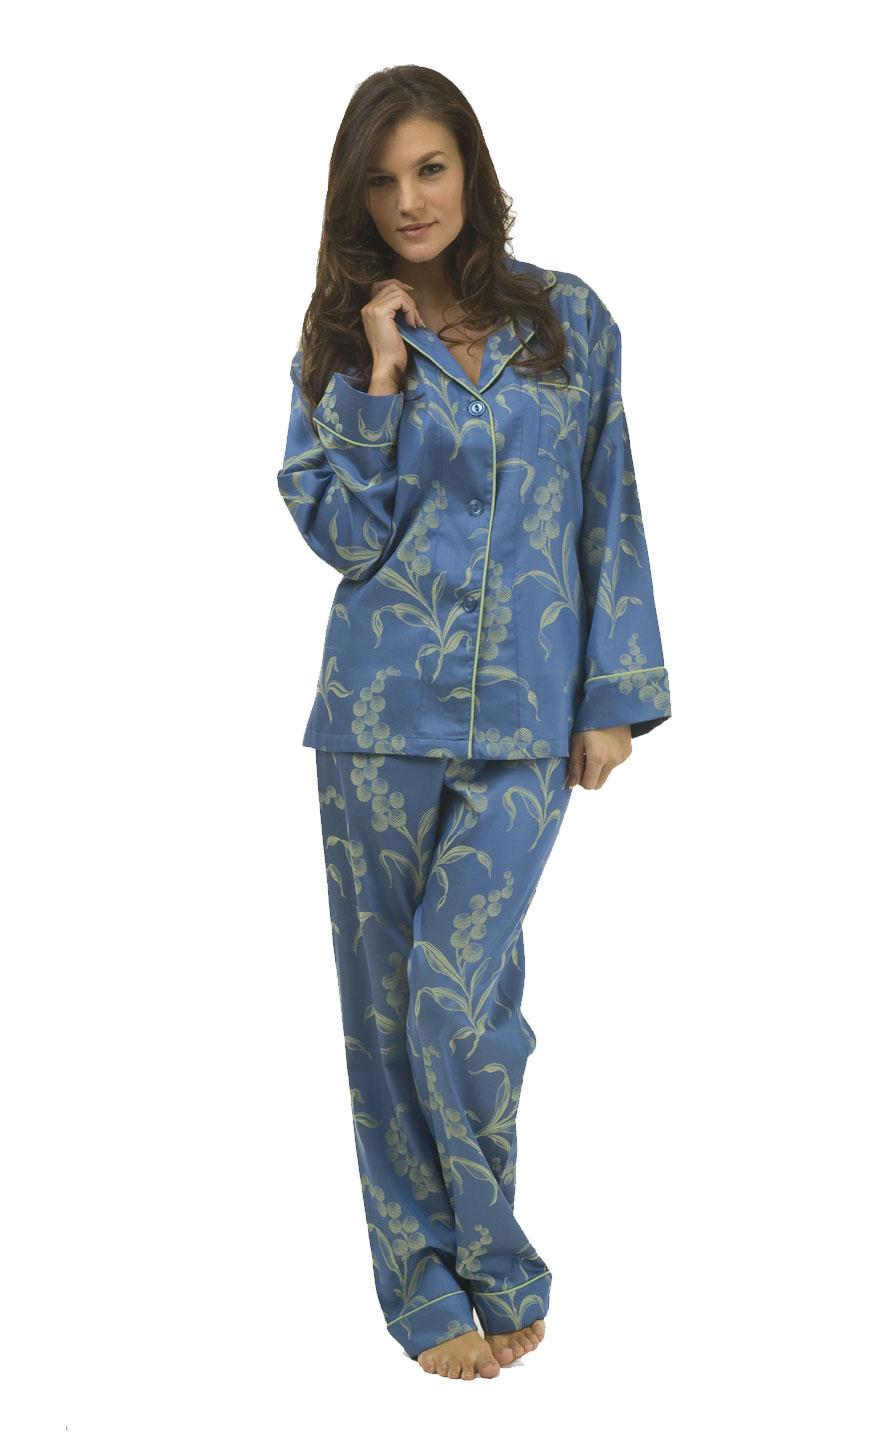 ladies night dress pyjamas - photo #20